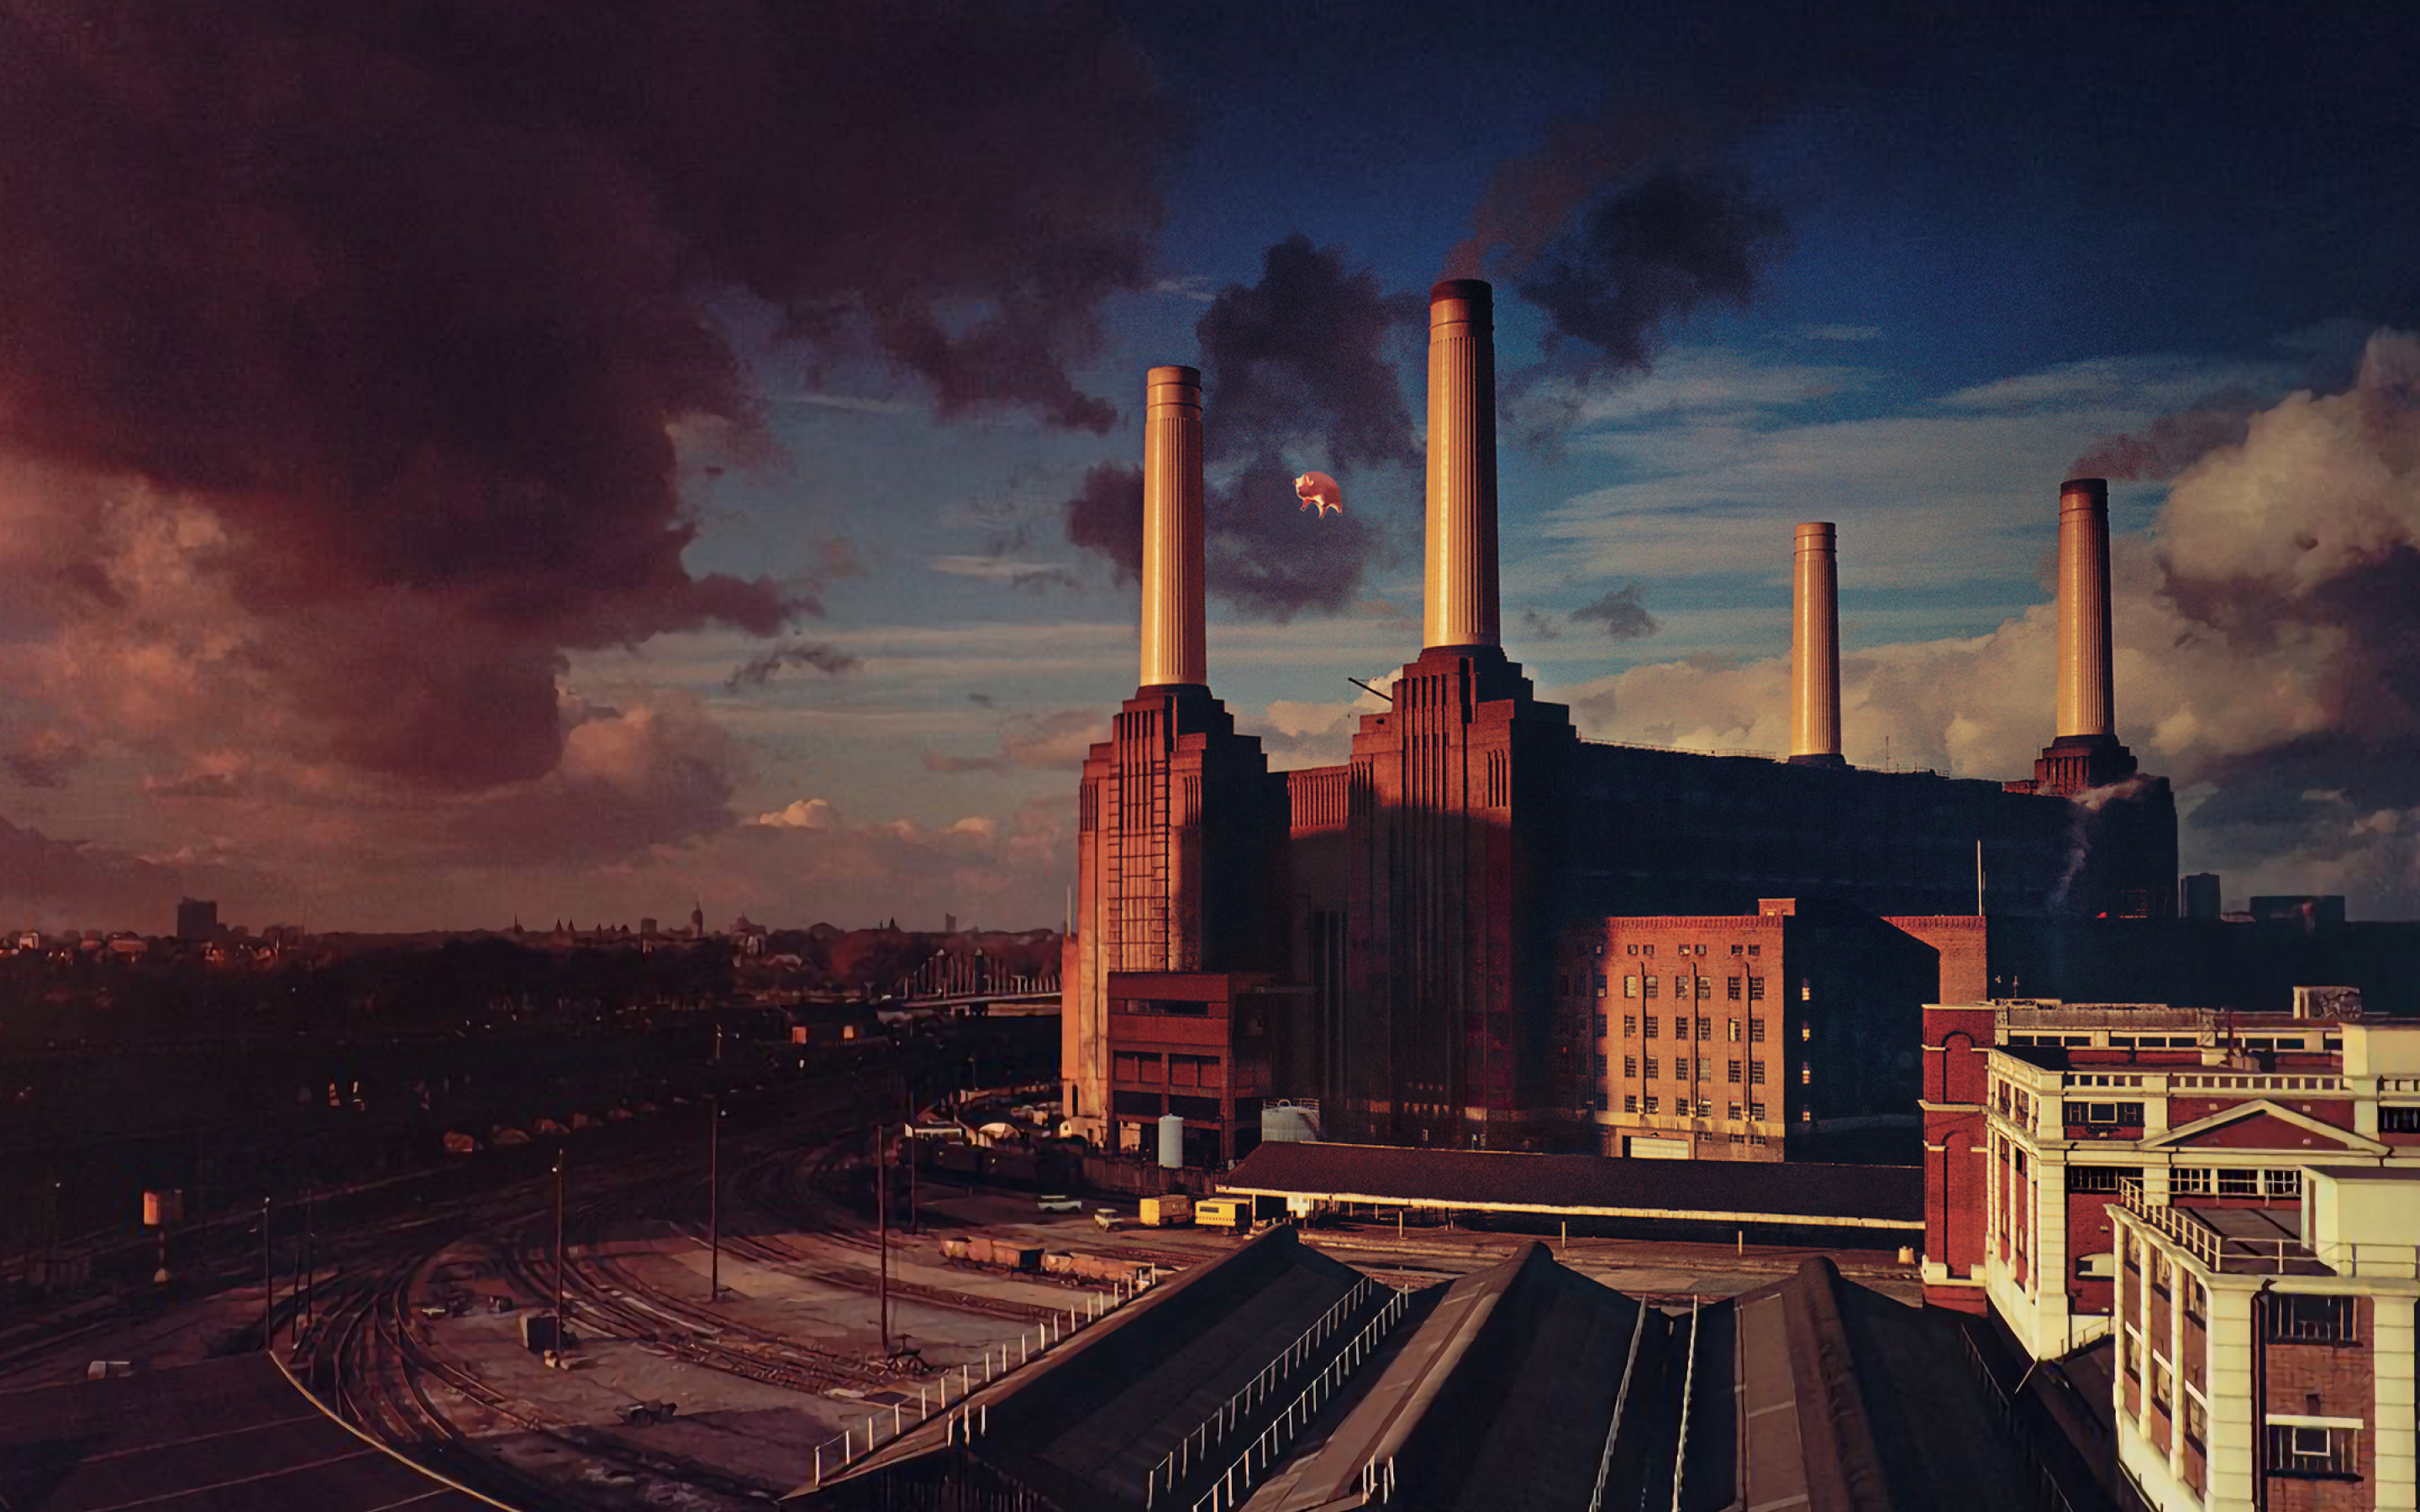 2880x1800 Pink Floyd Animals Album Cover Macbook Pro Retina Wallpaper Hd Music 4k Wallpapers Images Photos And Background